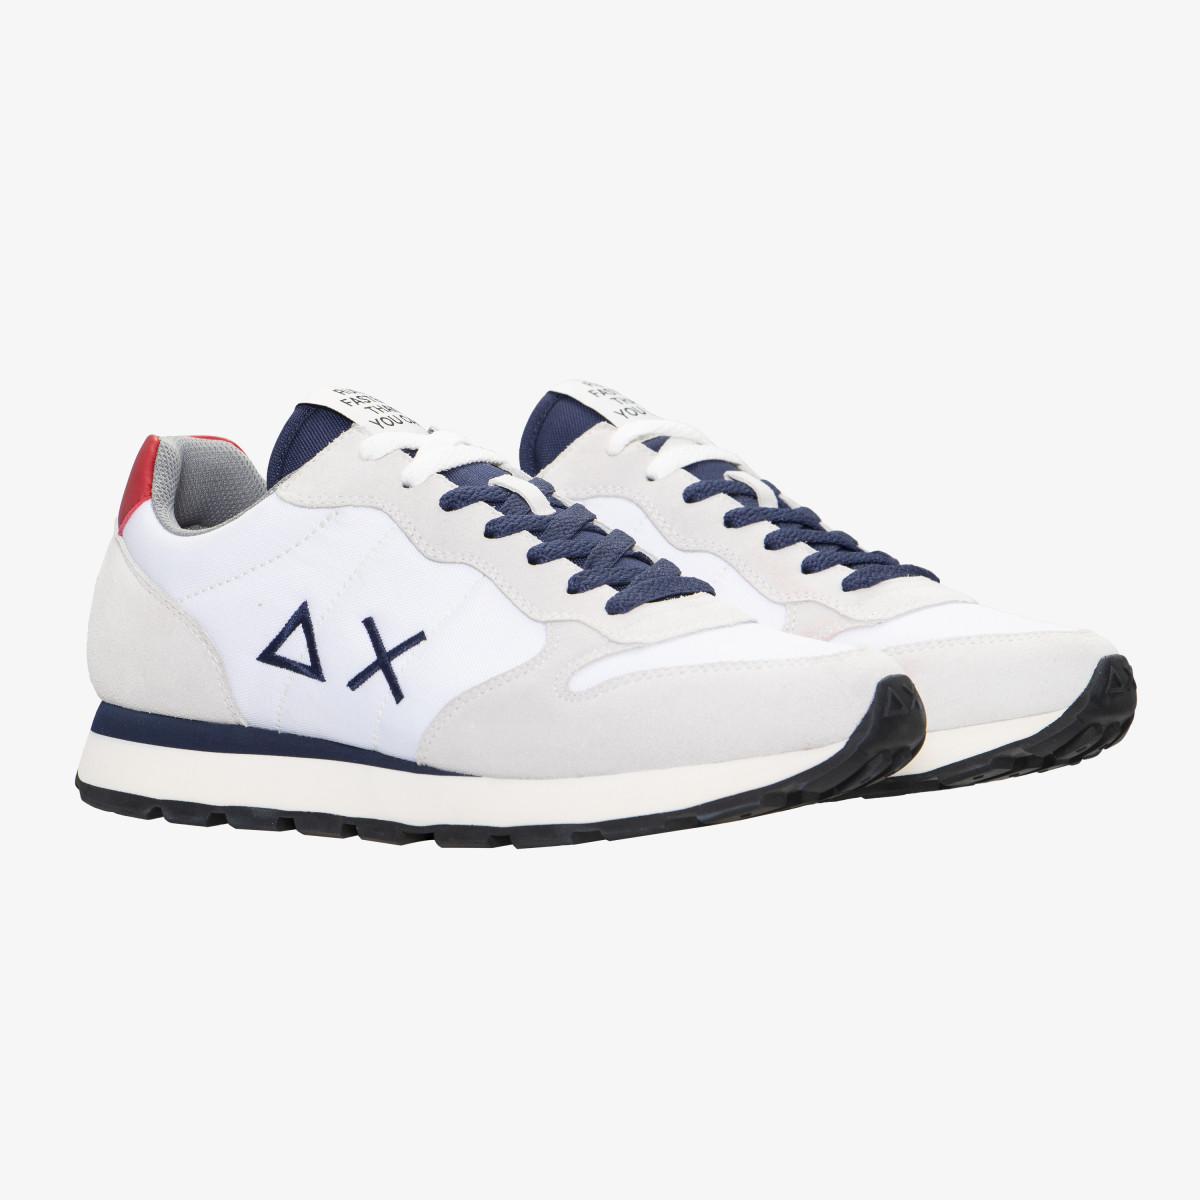 TOM SOLID NYLON WHITE/NAVY BLUE